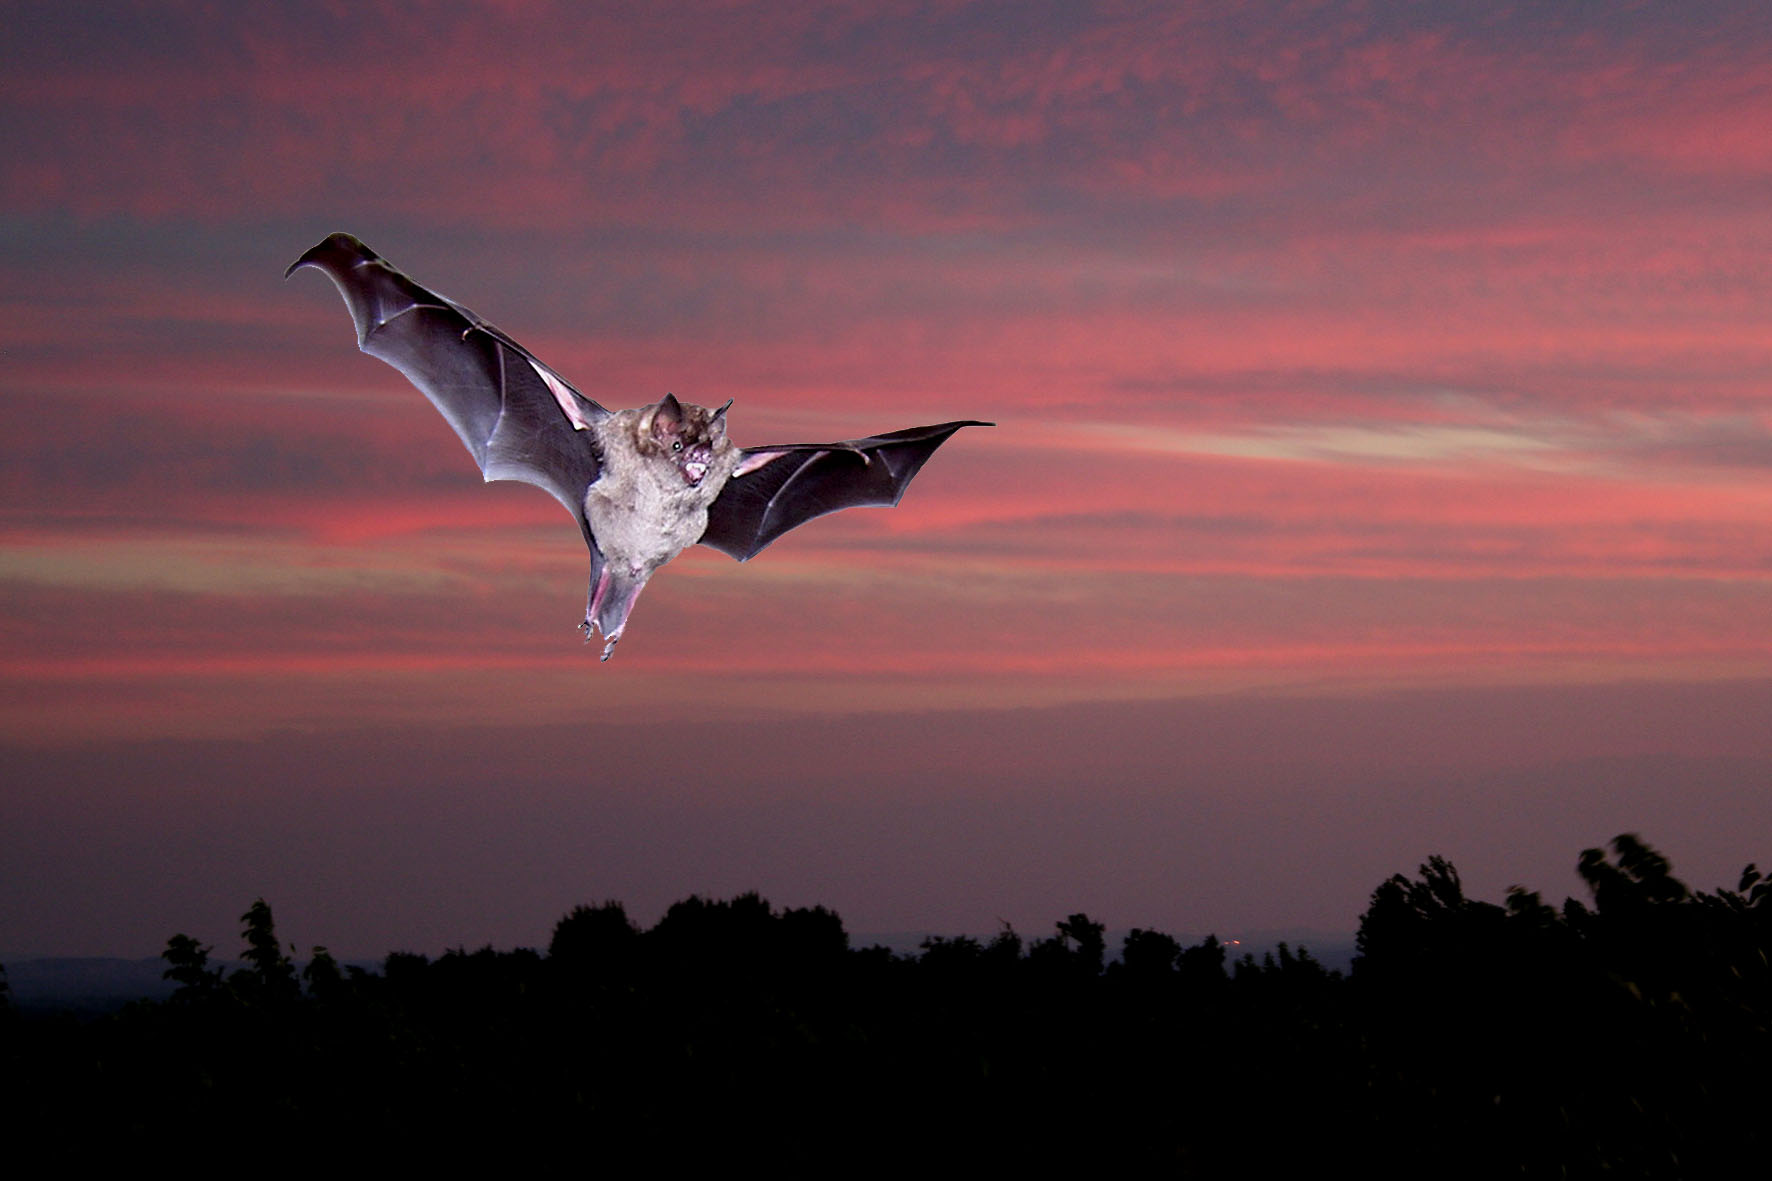 There is more to bats\' vision than meets the eye